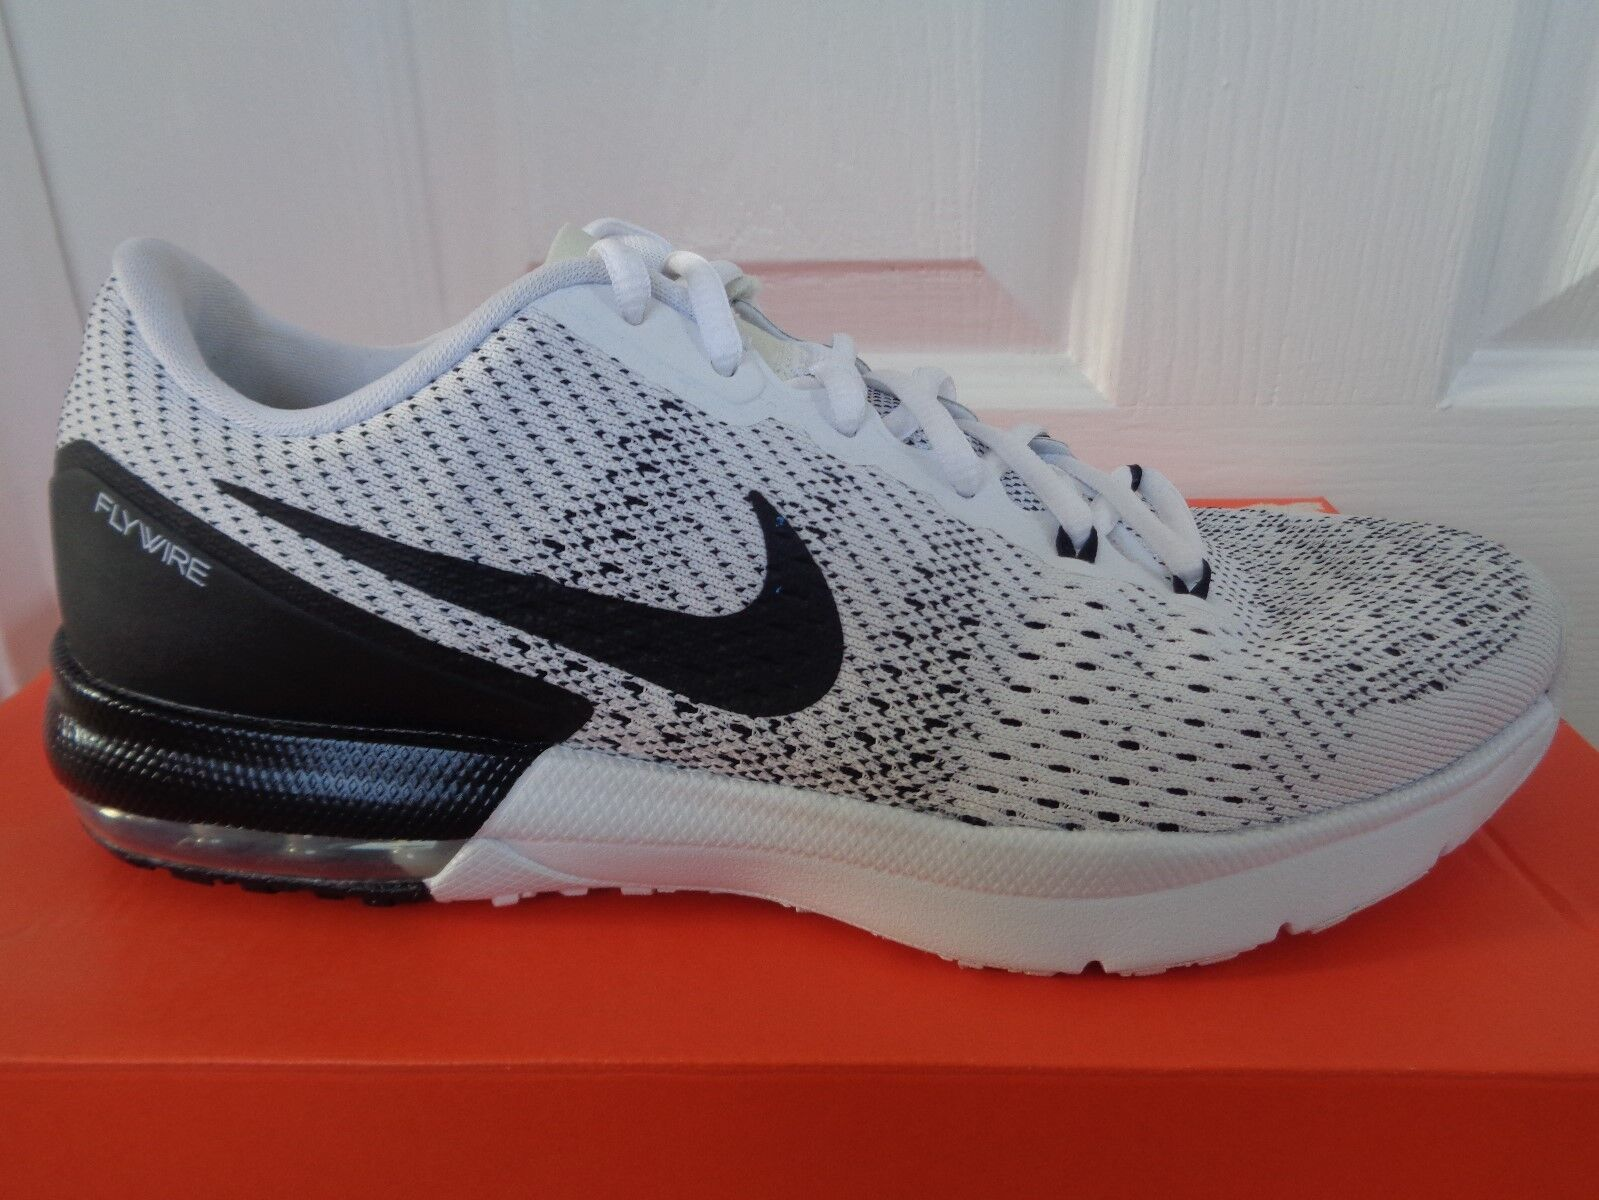 Nike Air Max Typha trainers sneakers shoes 820198 100 NEW+BOX eu 41 us 8 NEW+BOX 100 904f89